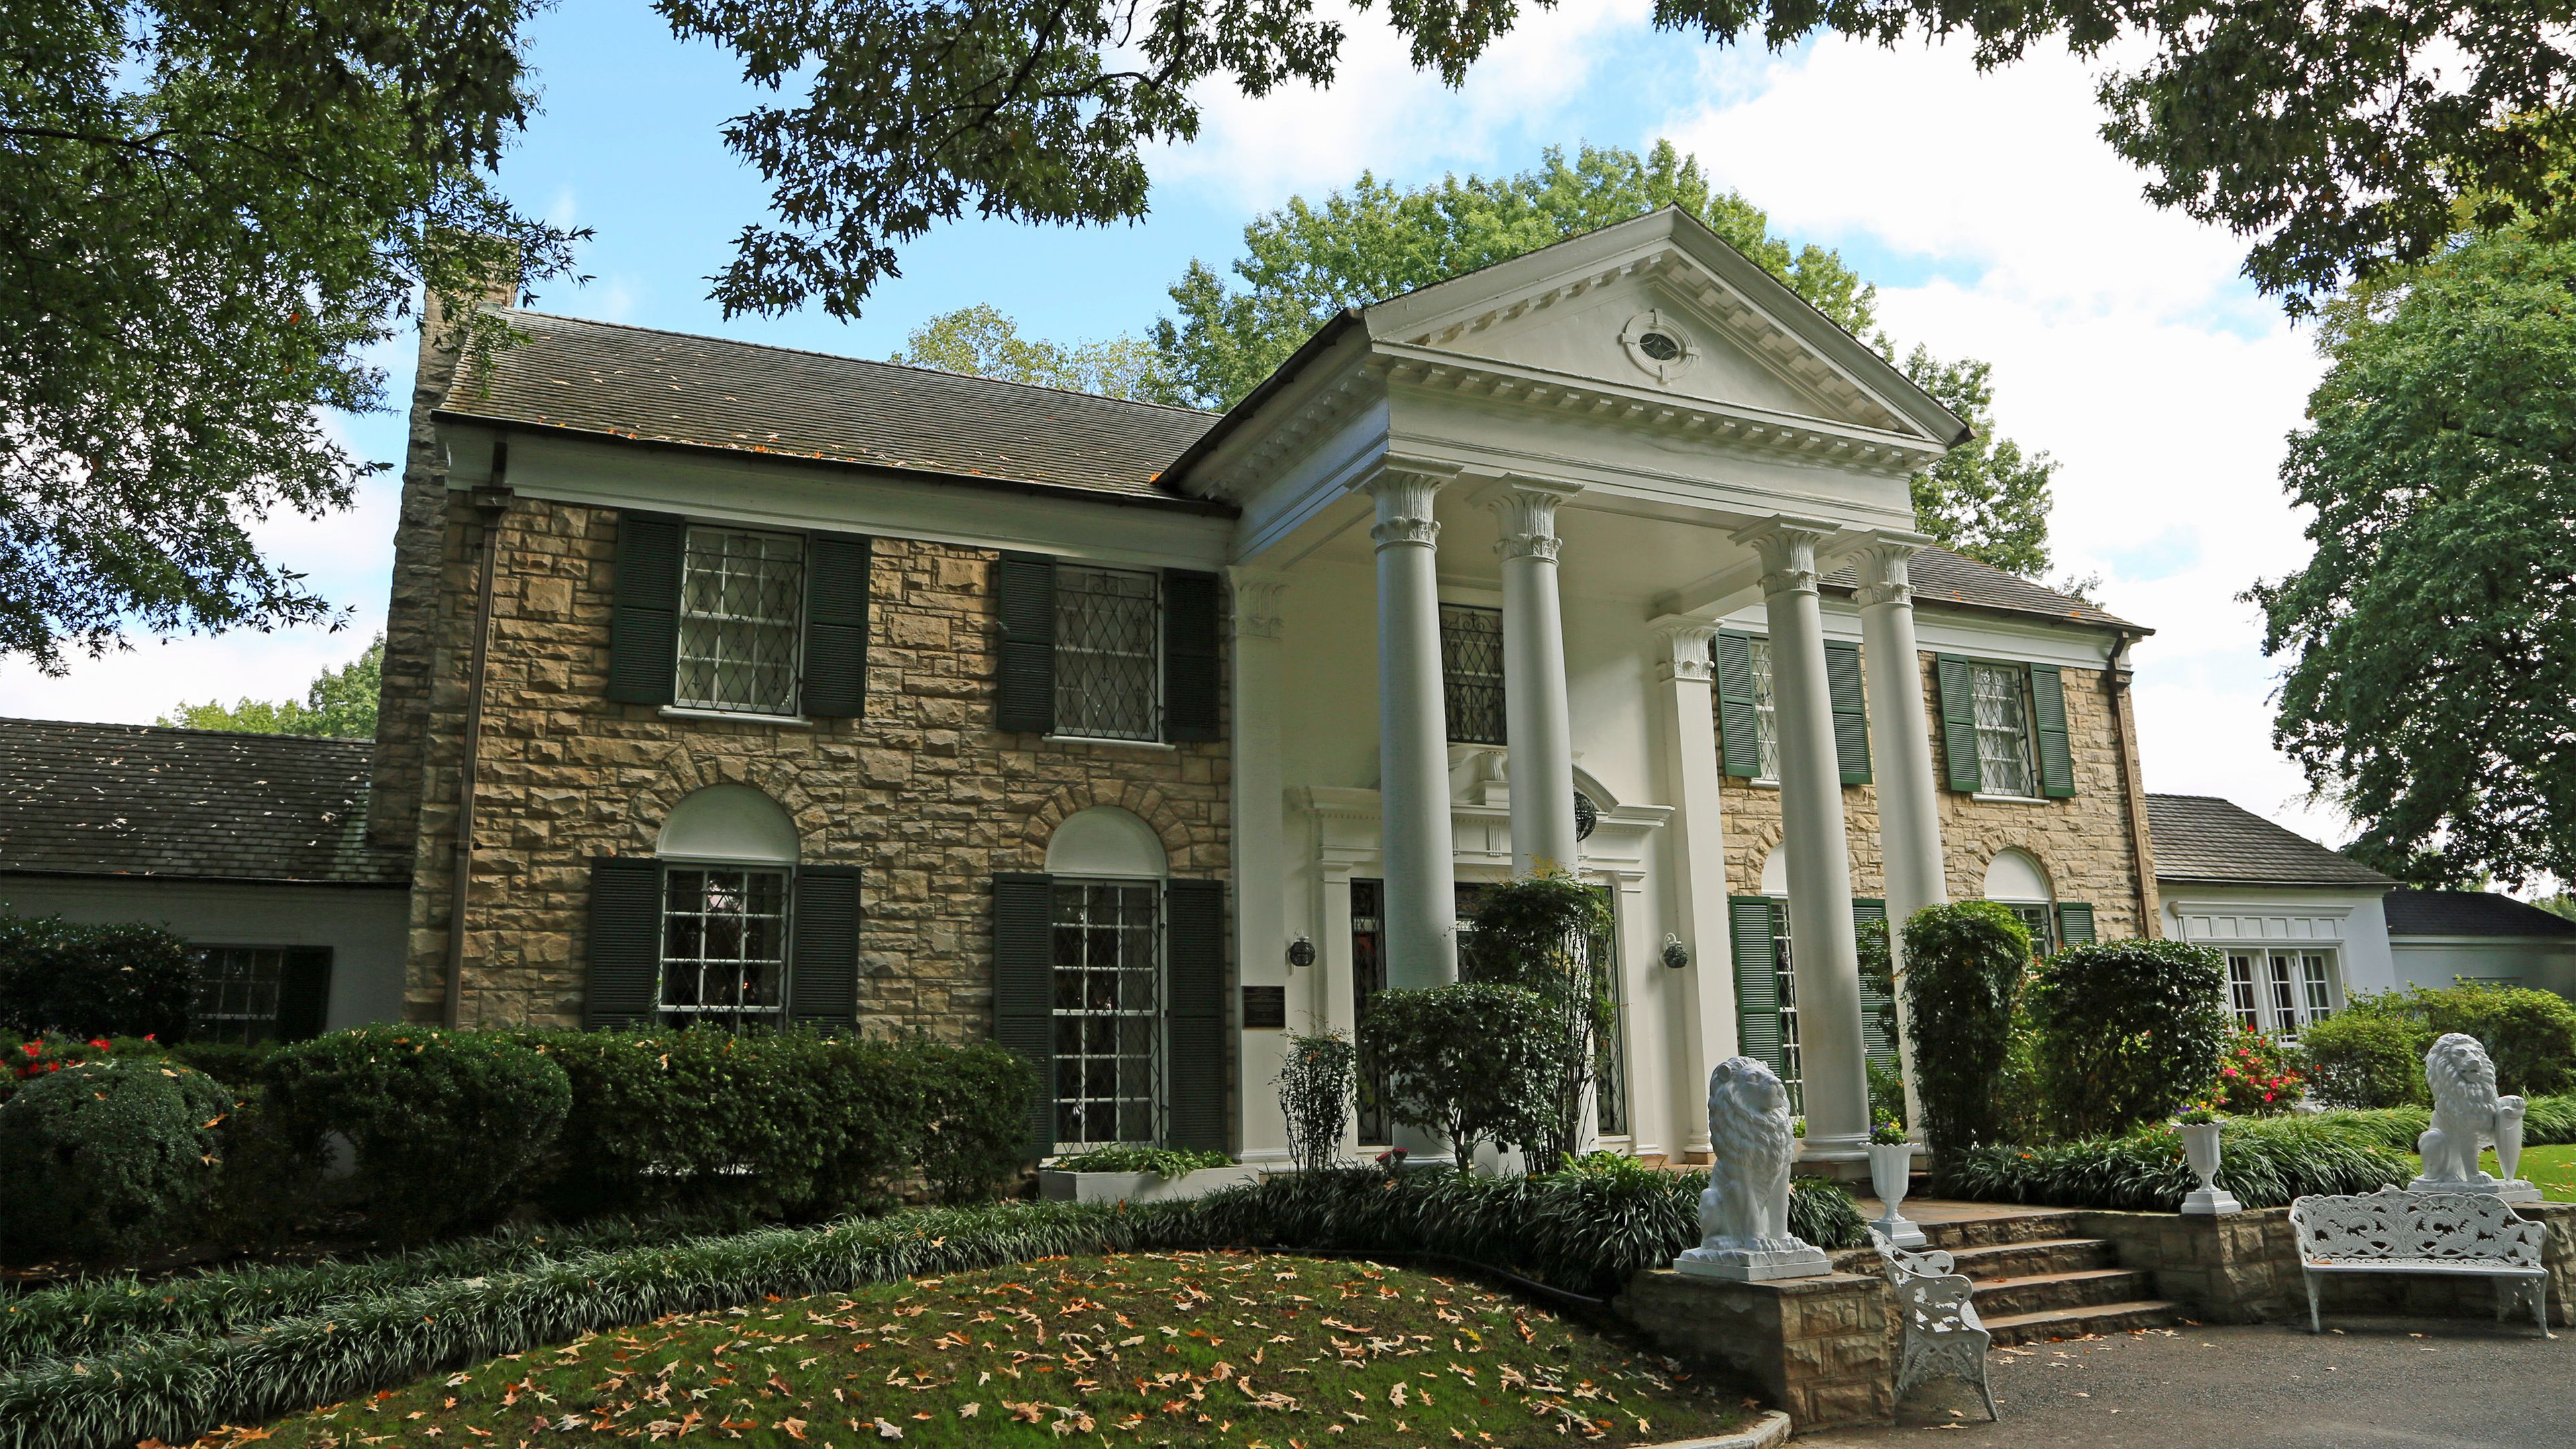 Exterior of Graceland in Memphis